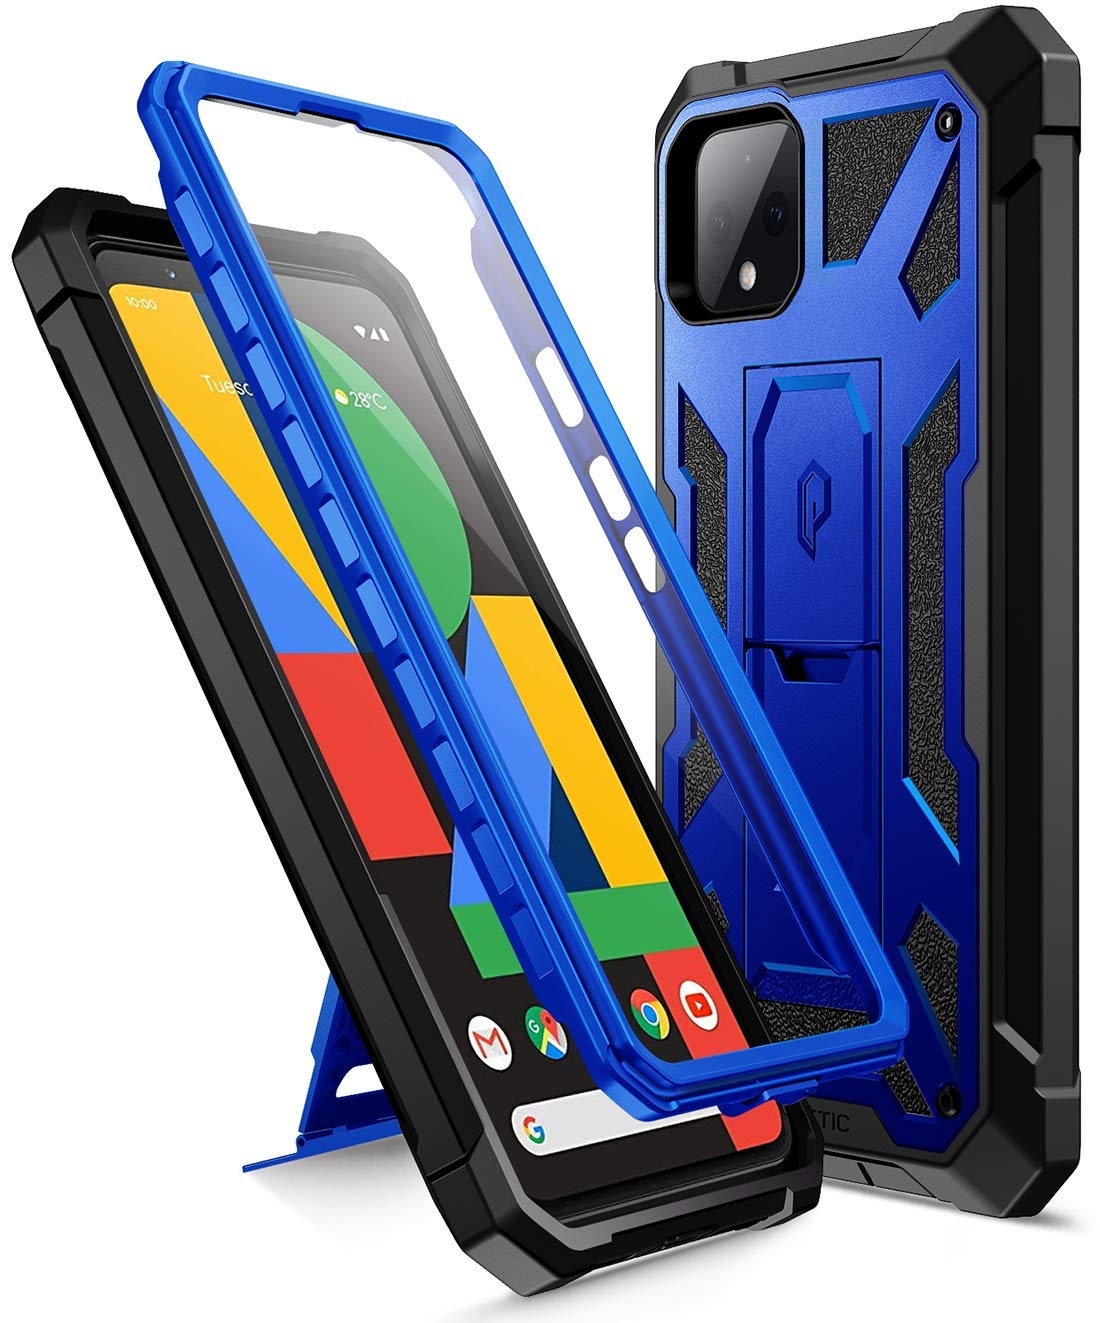 Poetic Spartan Series Designed for Google Pixel 4 5.7 inch Case, Full-Body Rugged Dual-Layer Metallic Color with Premium Leather Texture Shockproof Protective Cover with Kickstand, Metallic Blue